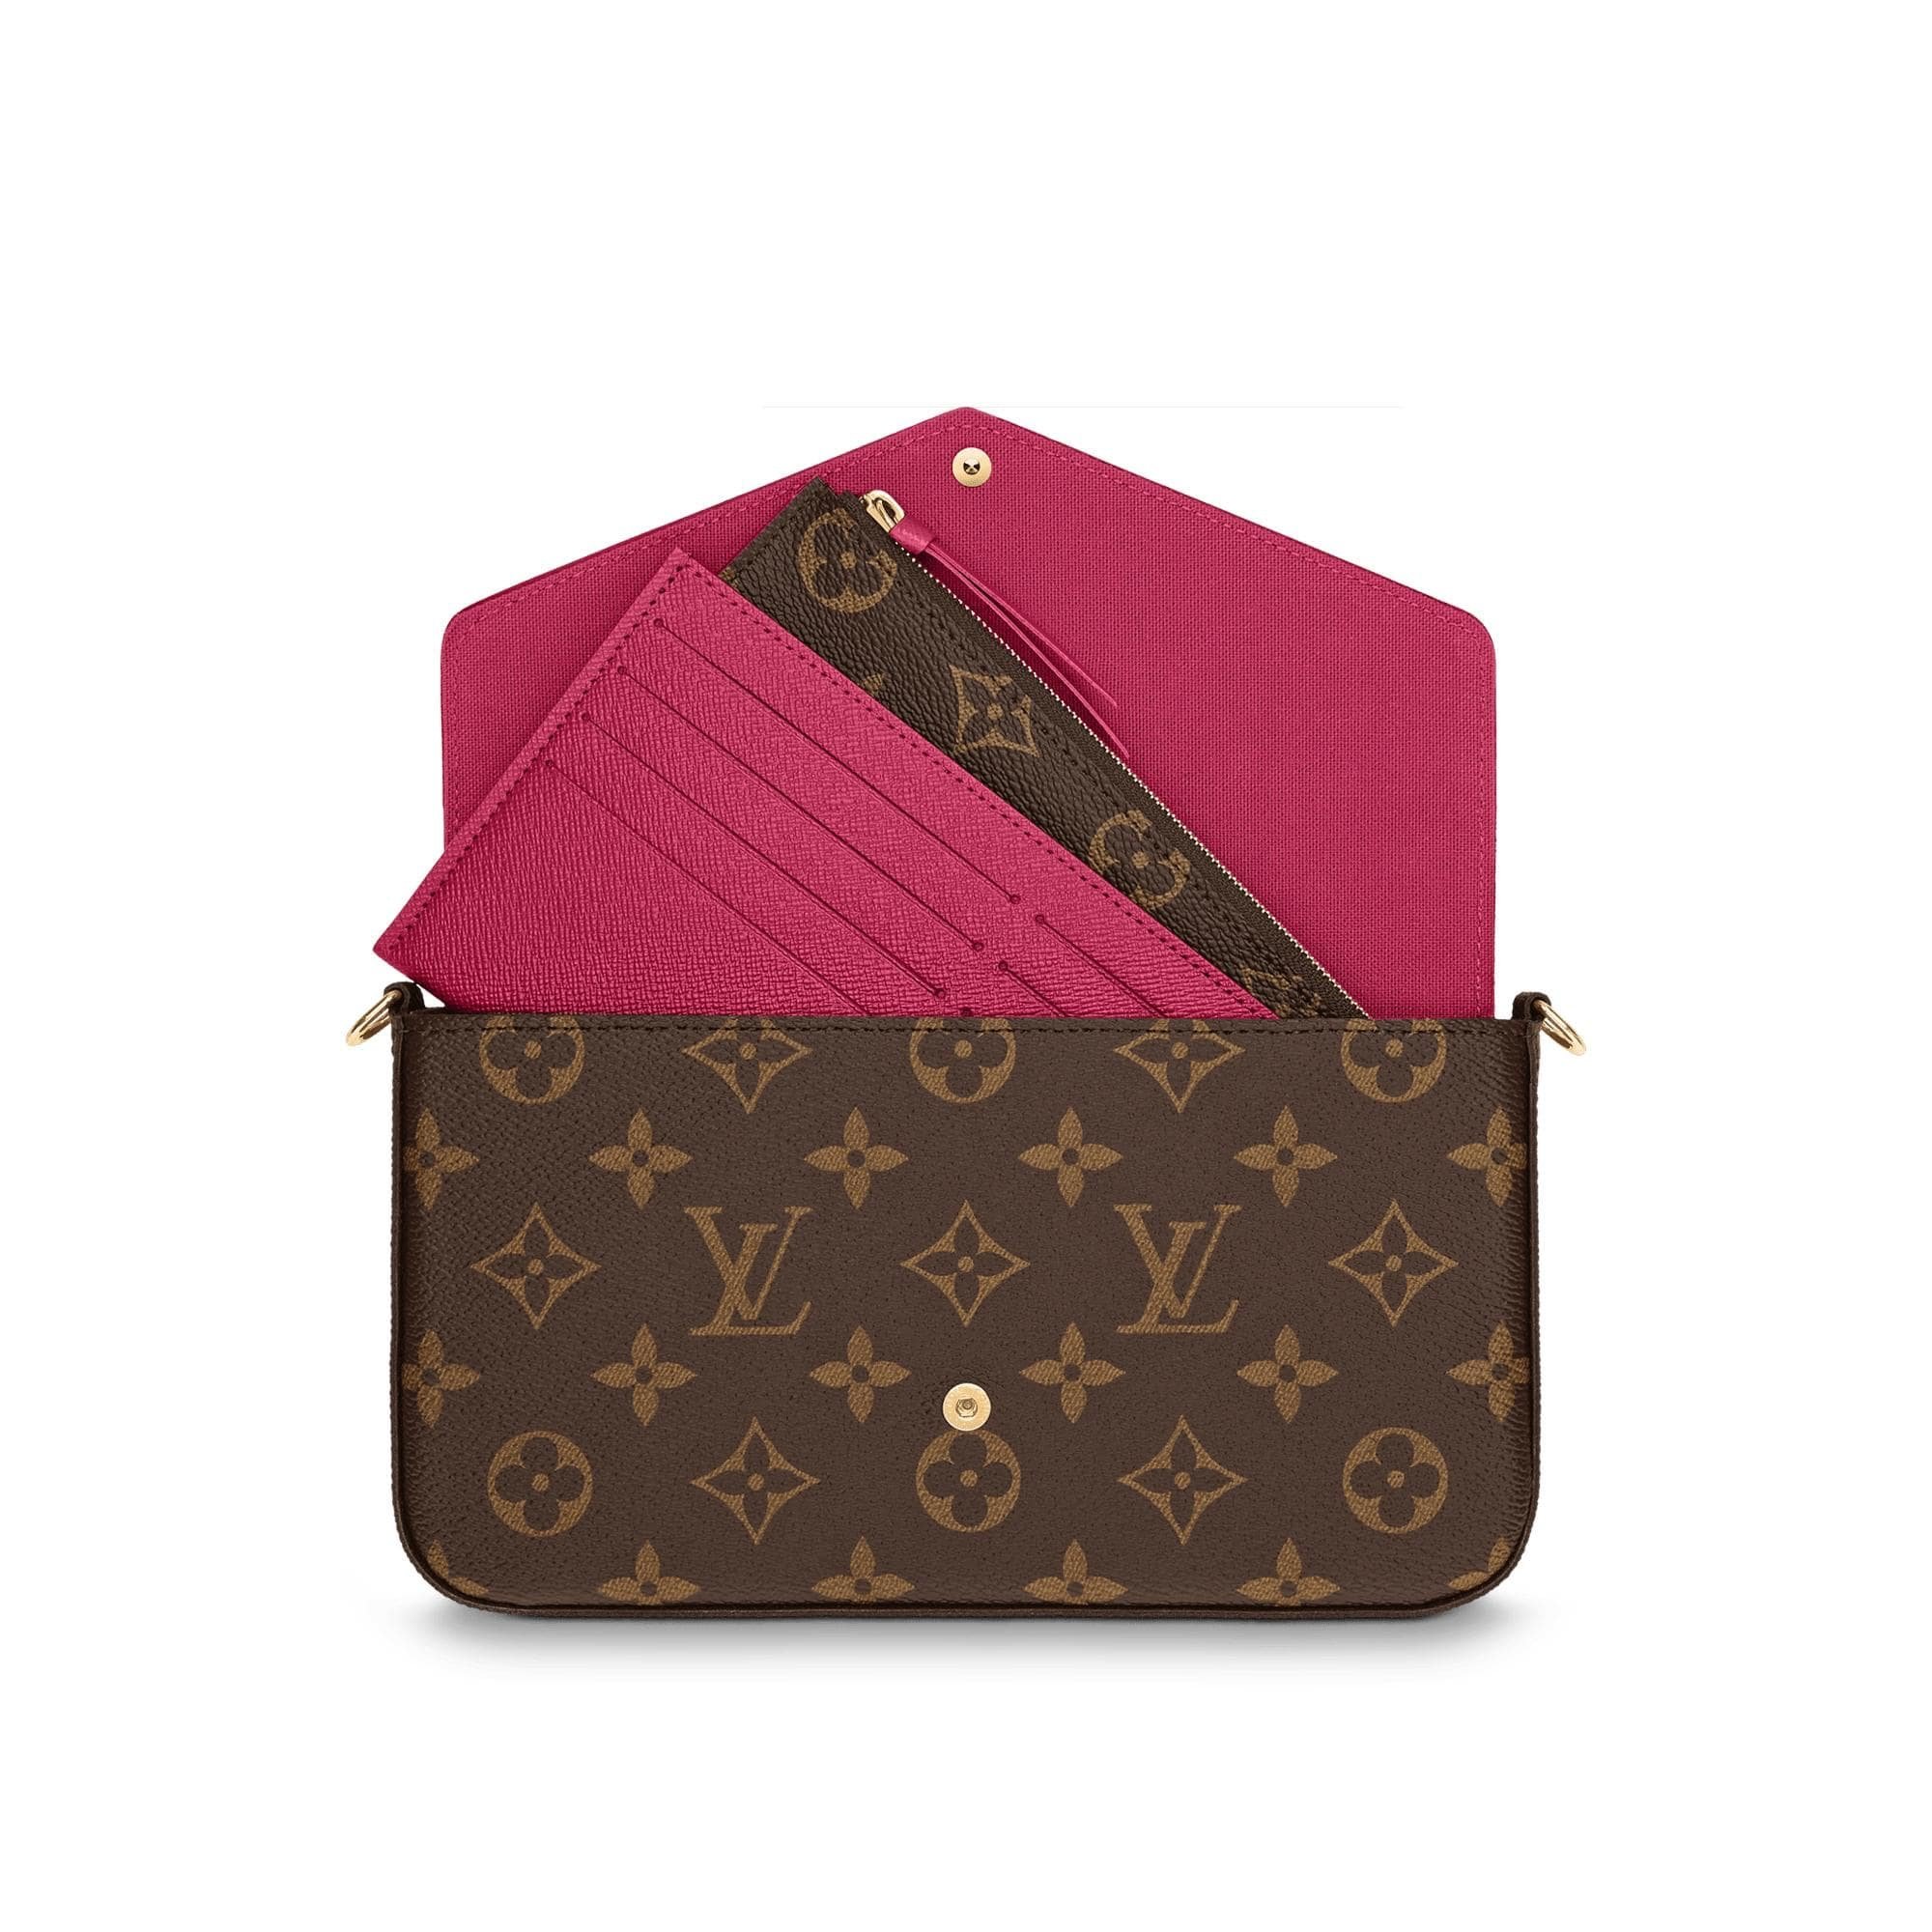 Louis Vuitton Pochette Felicie Monogram (With Accessories) Fuchsia